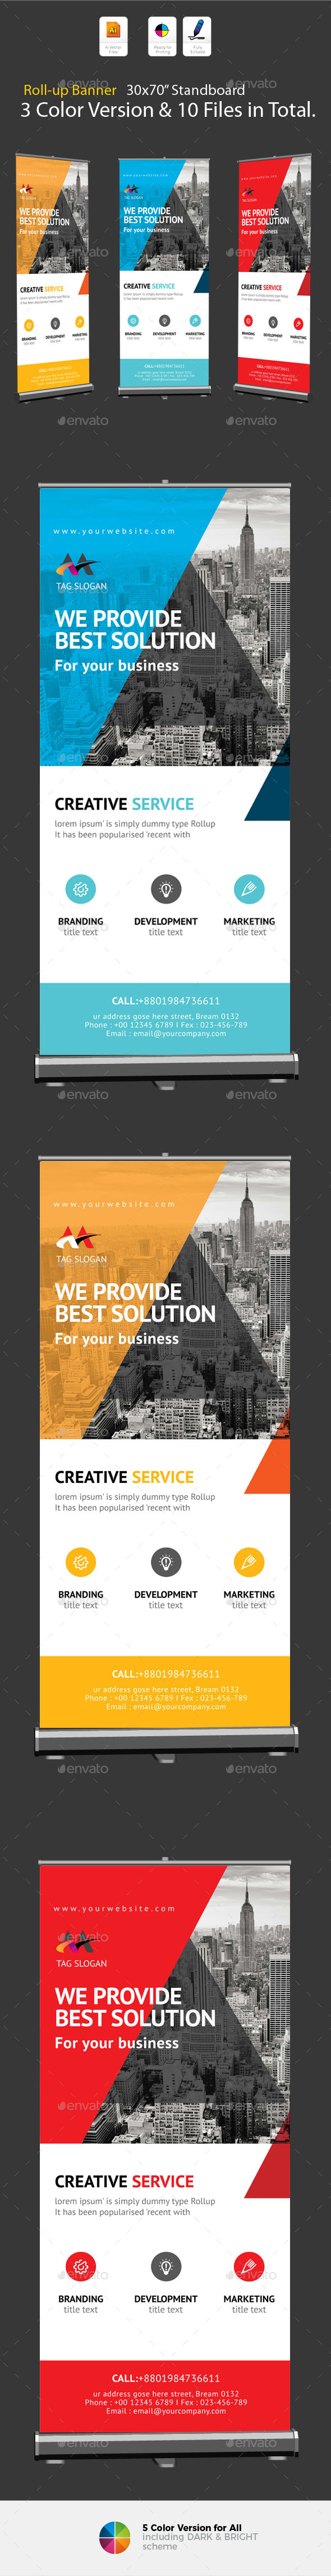 GraphicRiver Roll-up Banner 20788152